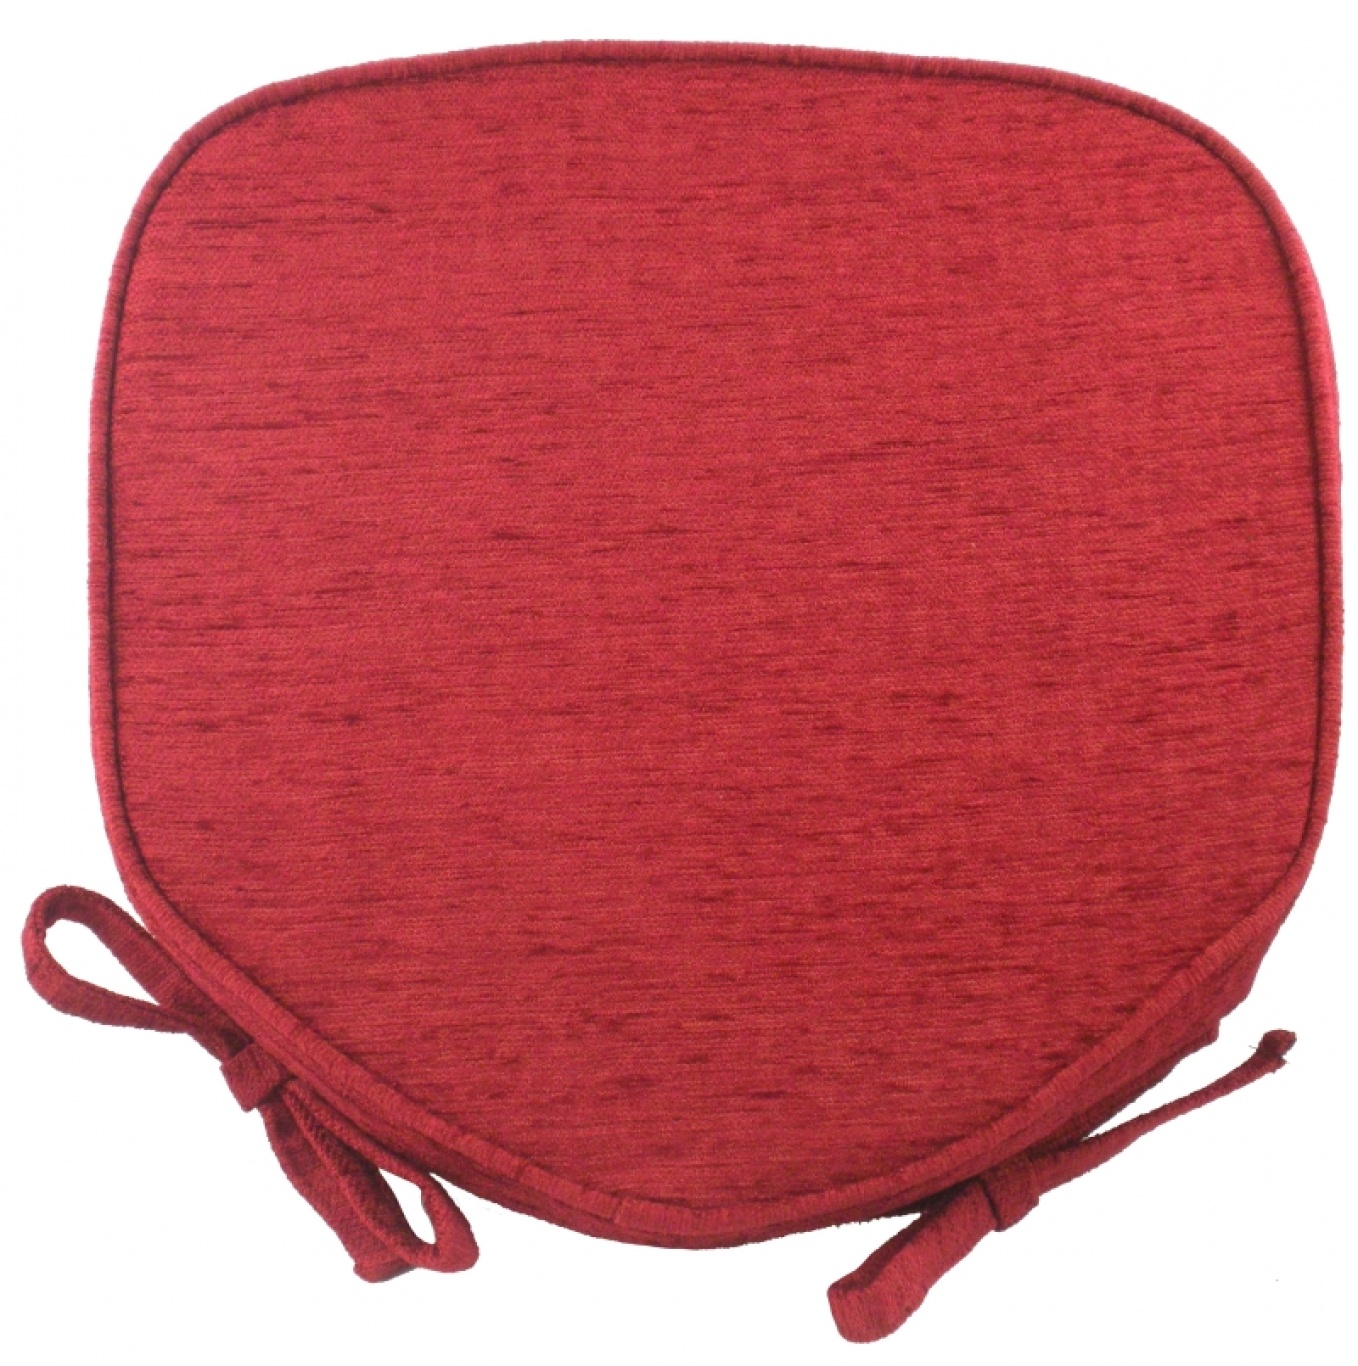 Image of Savannah Walled Seat Pads Wine